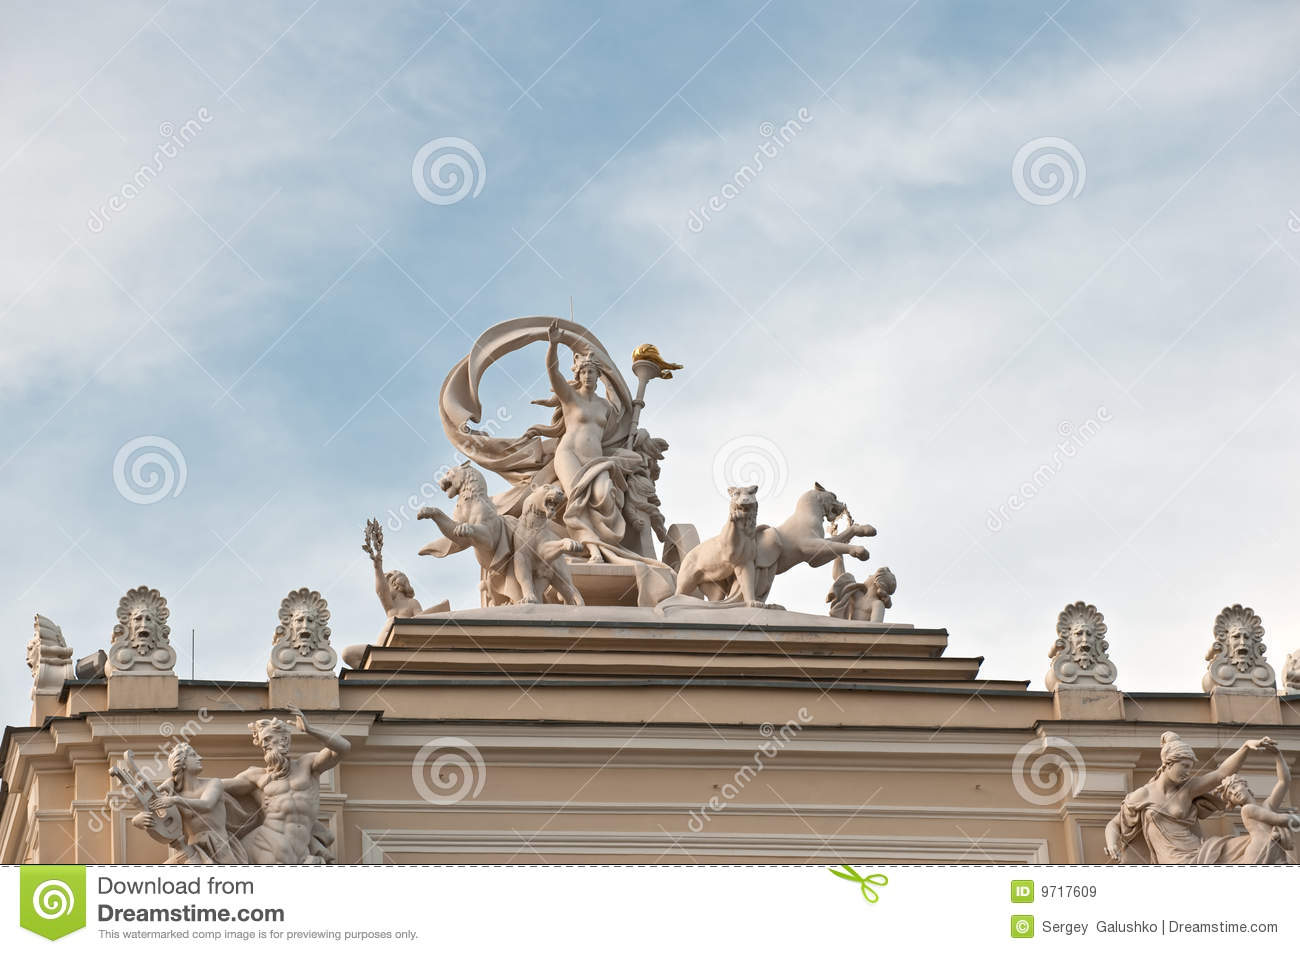 Statue of a building of an opera